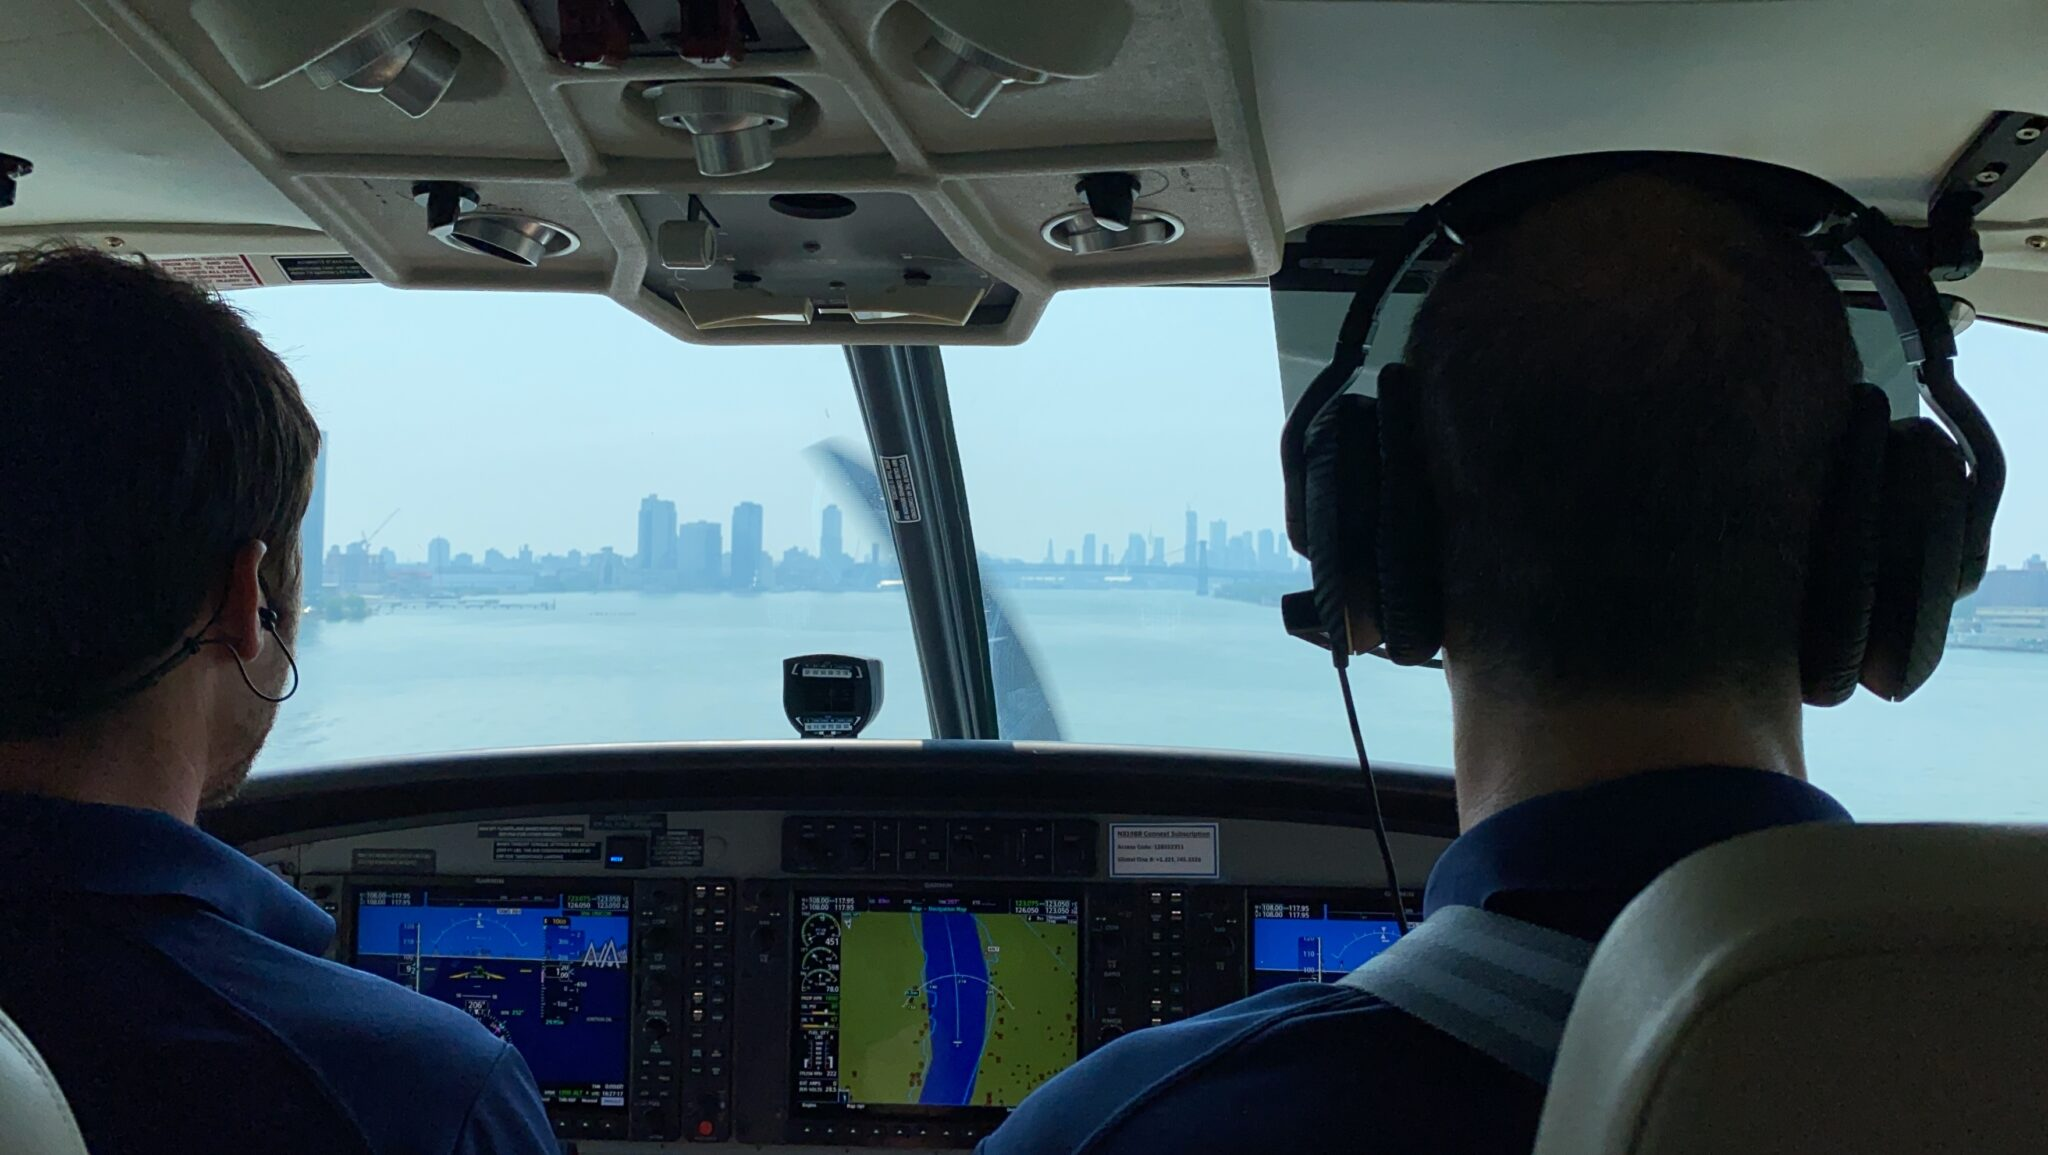 Tailwind seaplane's cockpit, with two pilots at the controls